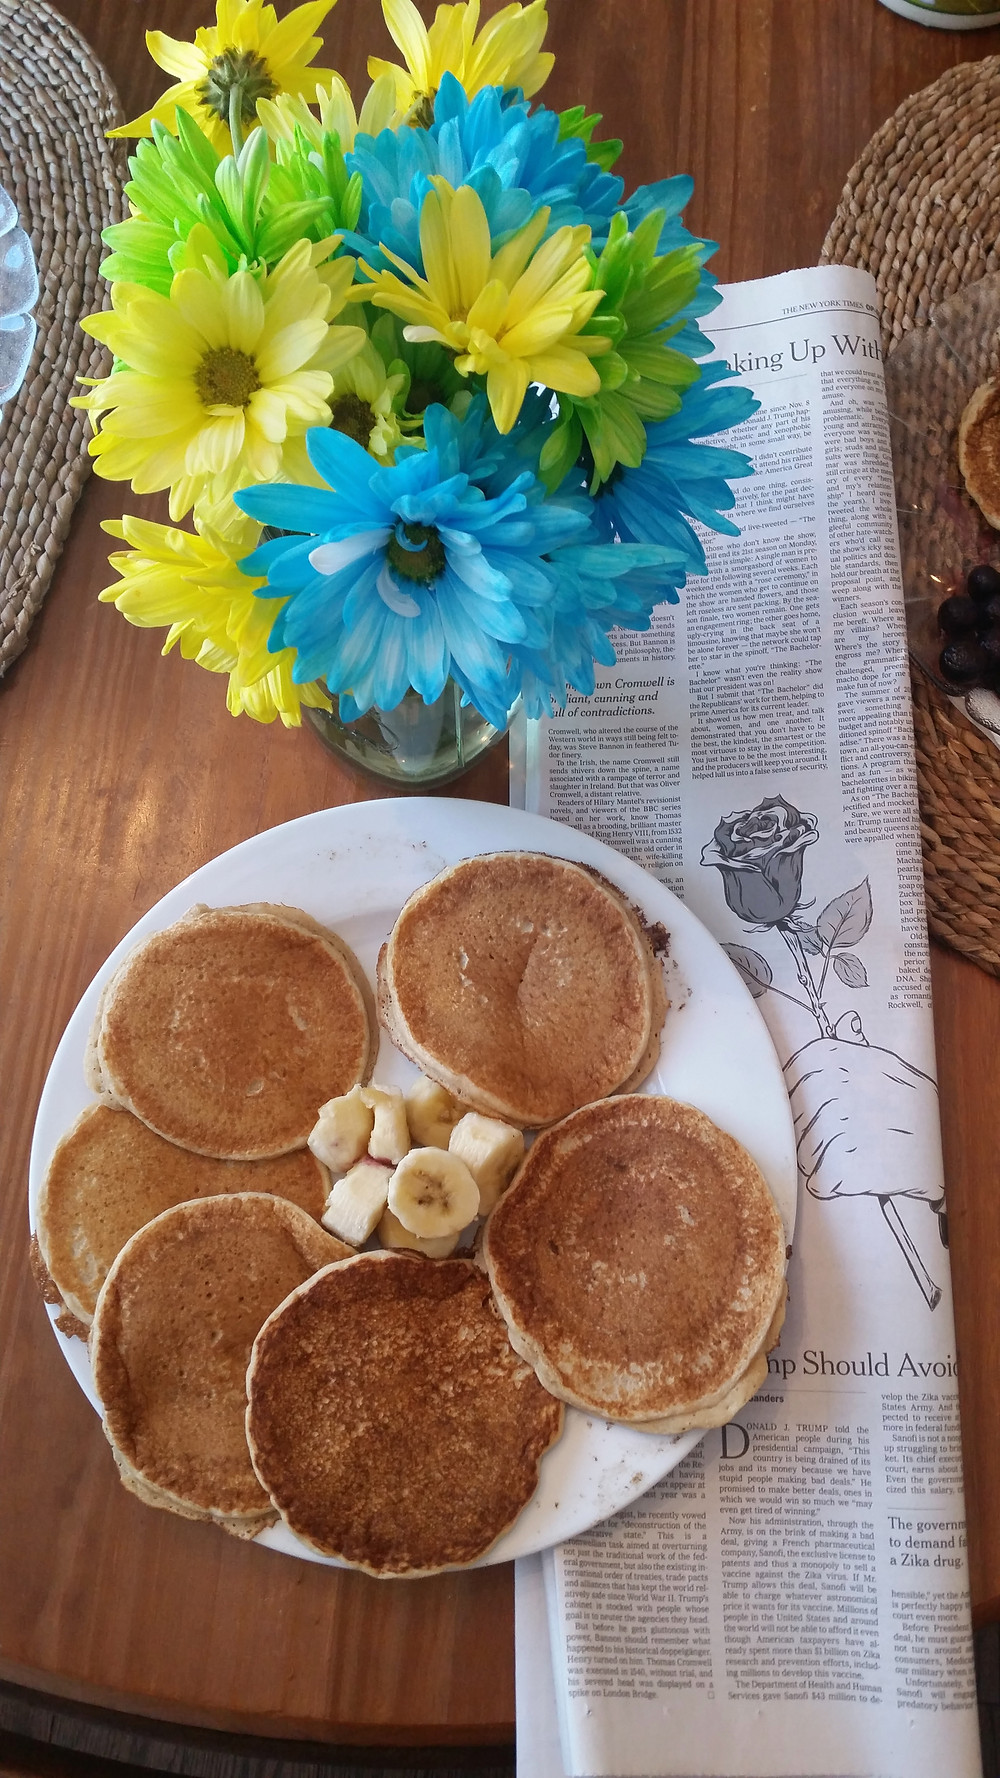 Pancakes and the newspaper